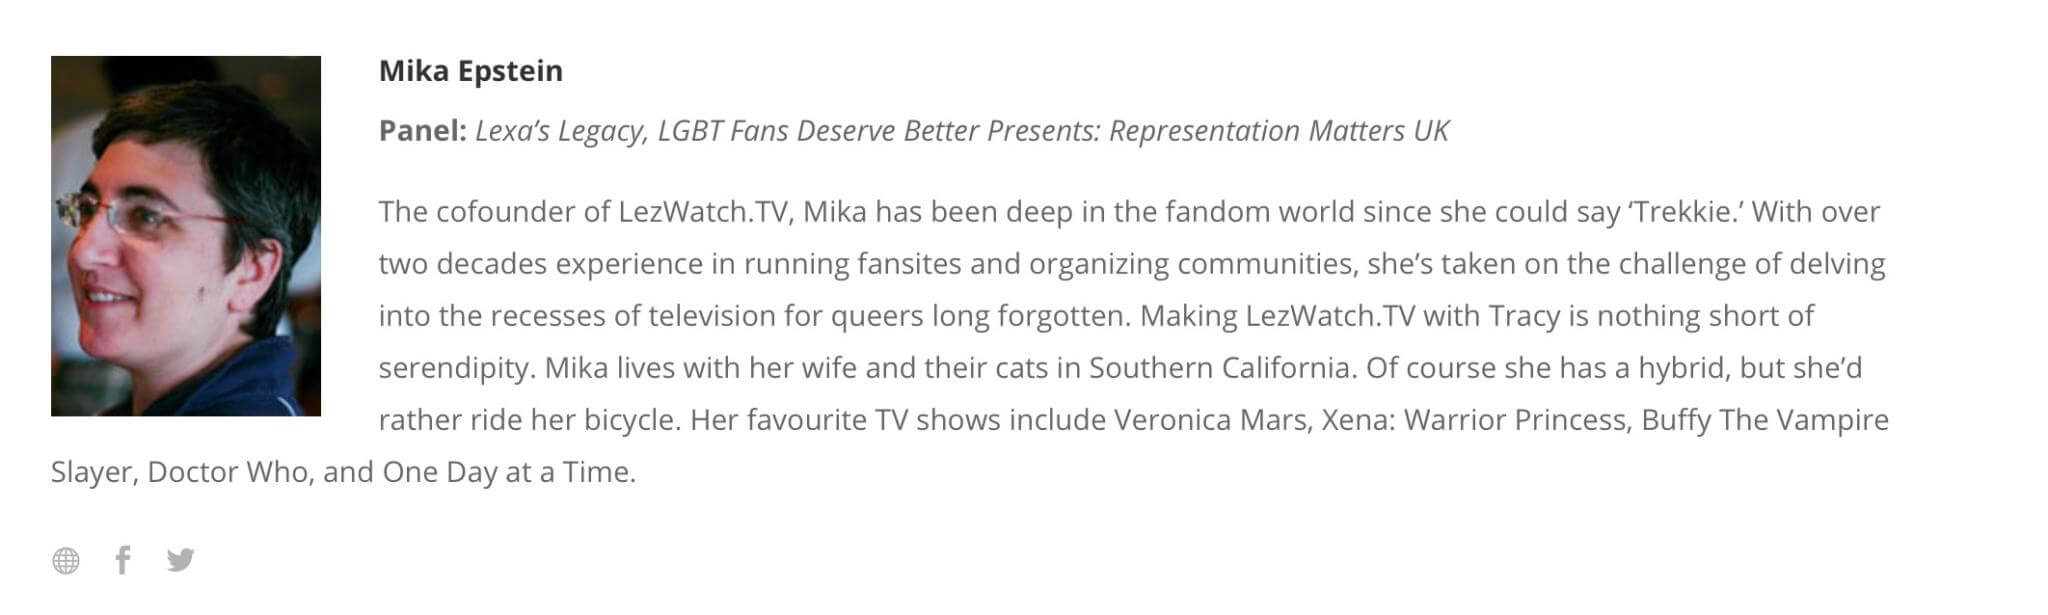 Mika's Bio which is the same as you'd see on this site. It also lists the panels I'll be on.